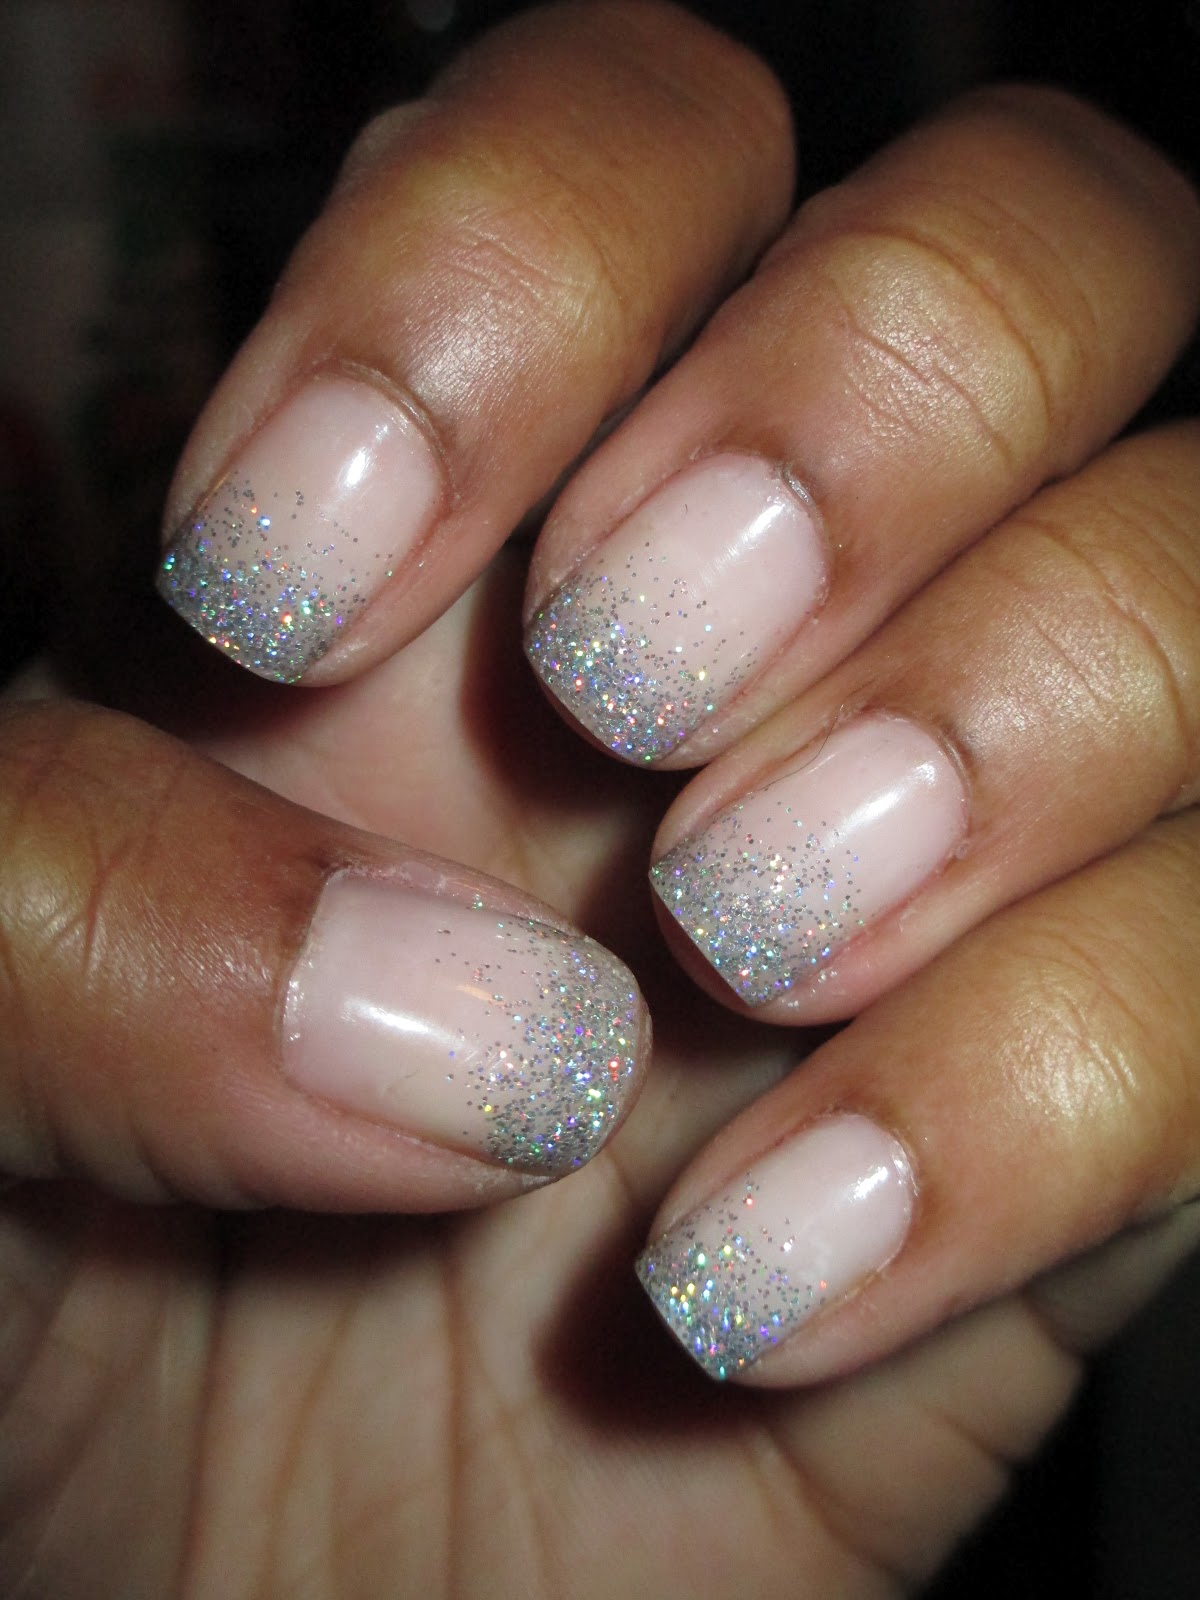 Fairly Charming: Church Mani: Frosted Tips!